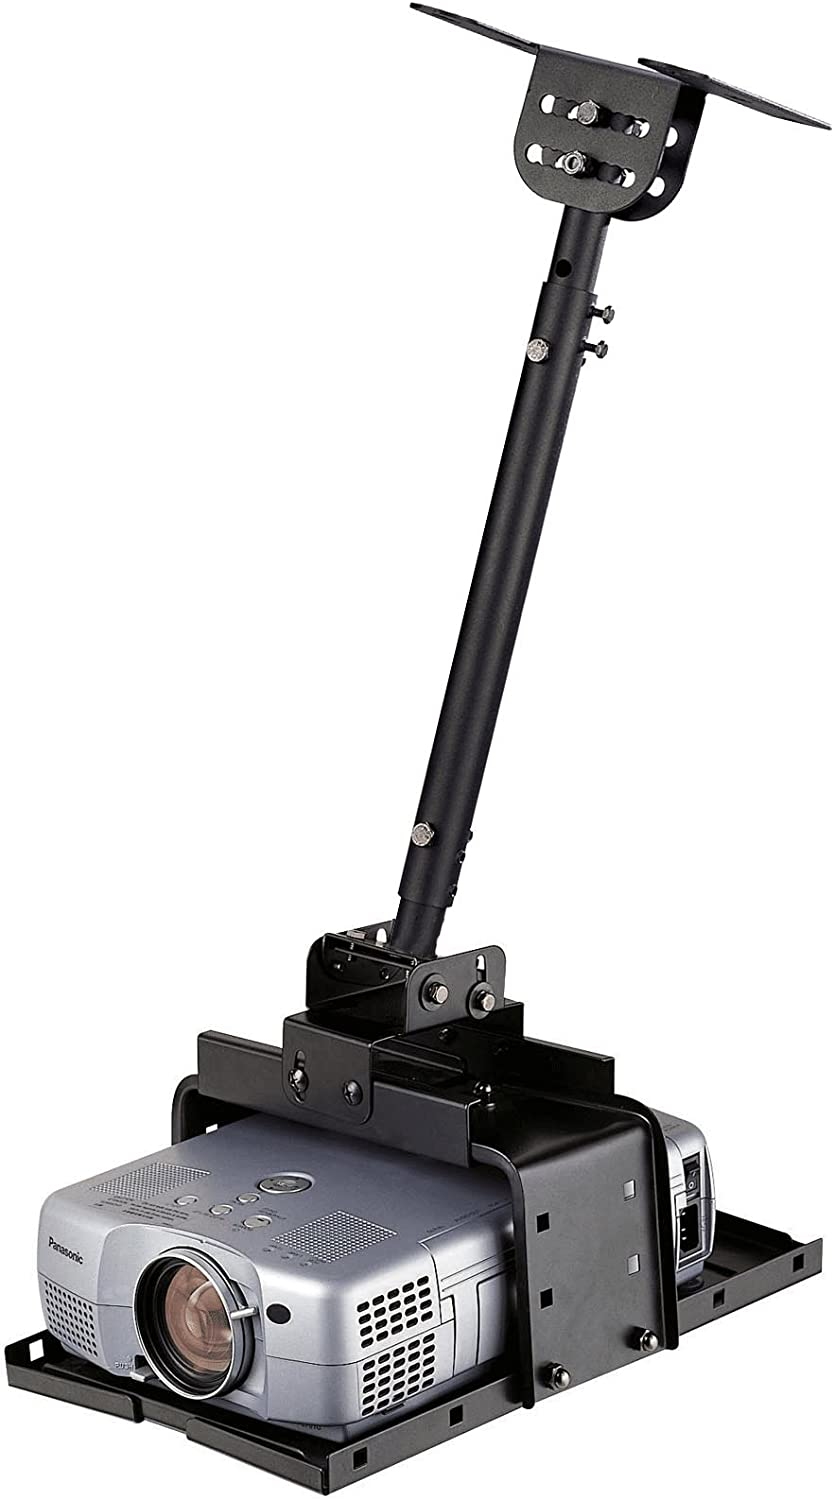 Gibbon Mounts Universal Projector Ceiling Mount Wall Mount Bracket with Extendable Pole Length 16.5-25.2,Hold up to 33lbs,Sliver,Two Different Install Ways